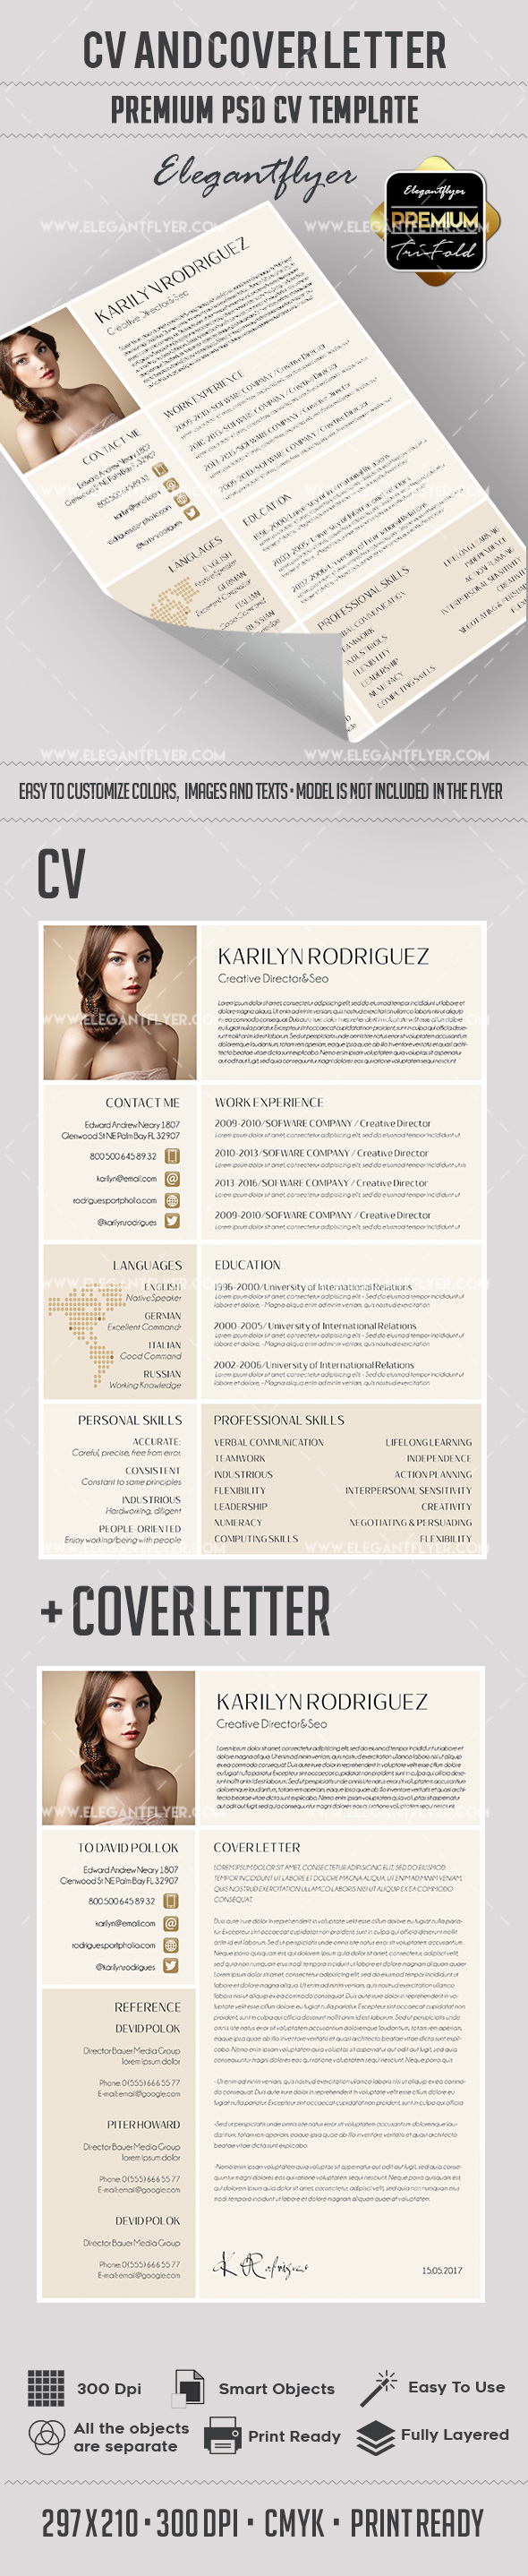 Great Premium Resume Template + CV and Cover